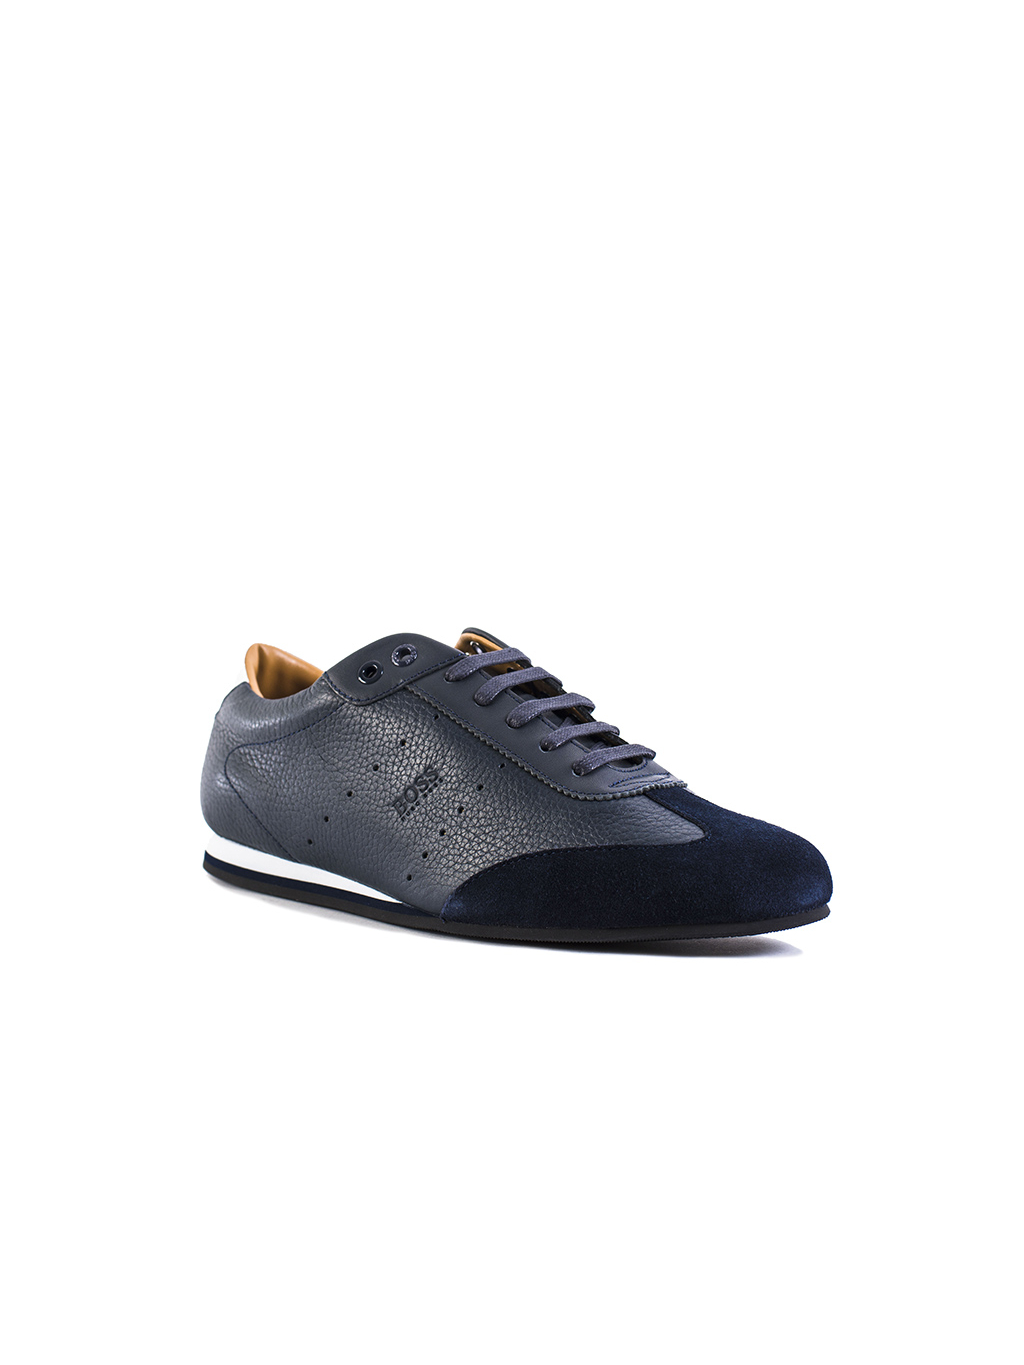 39e1358078865 hugo boss lighter dark blue panske tenisky elegantne modre (2)